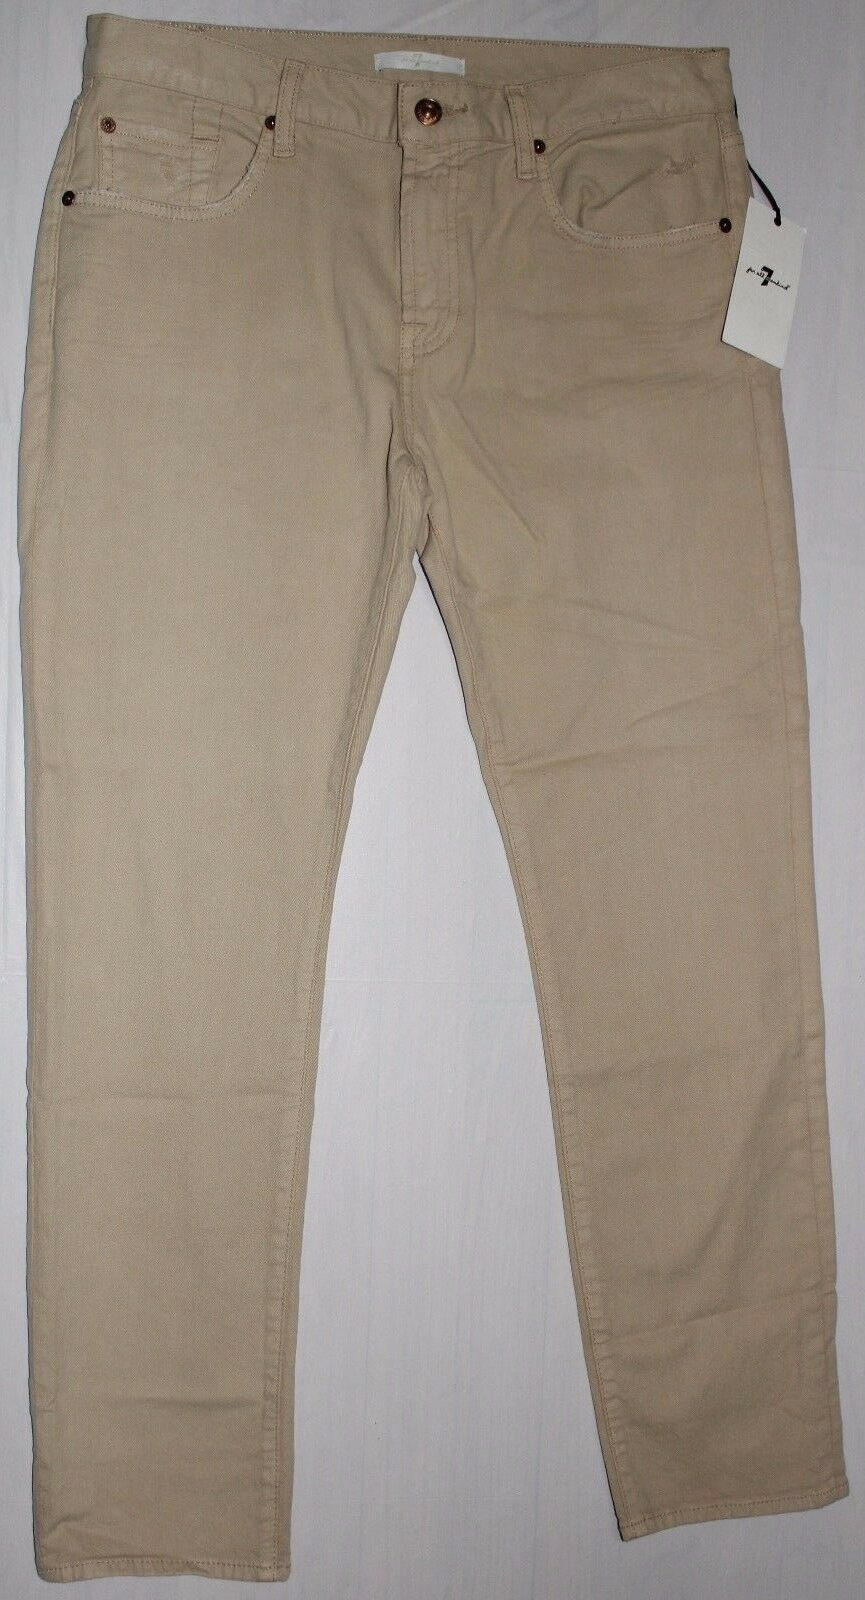 178 7 FOR ALL MANKIND DISTRESSED RELAXED SKINNY JEANS SZ 28